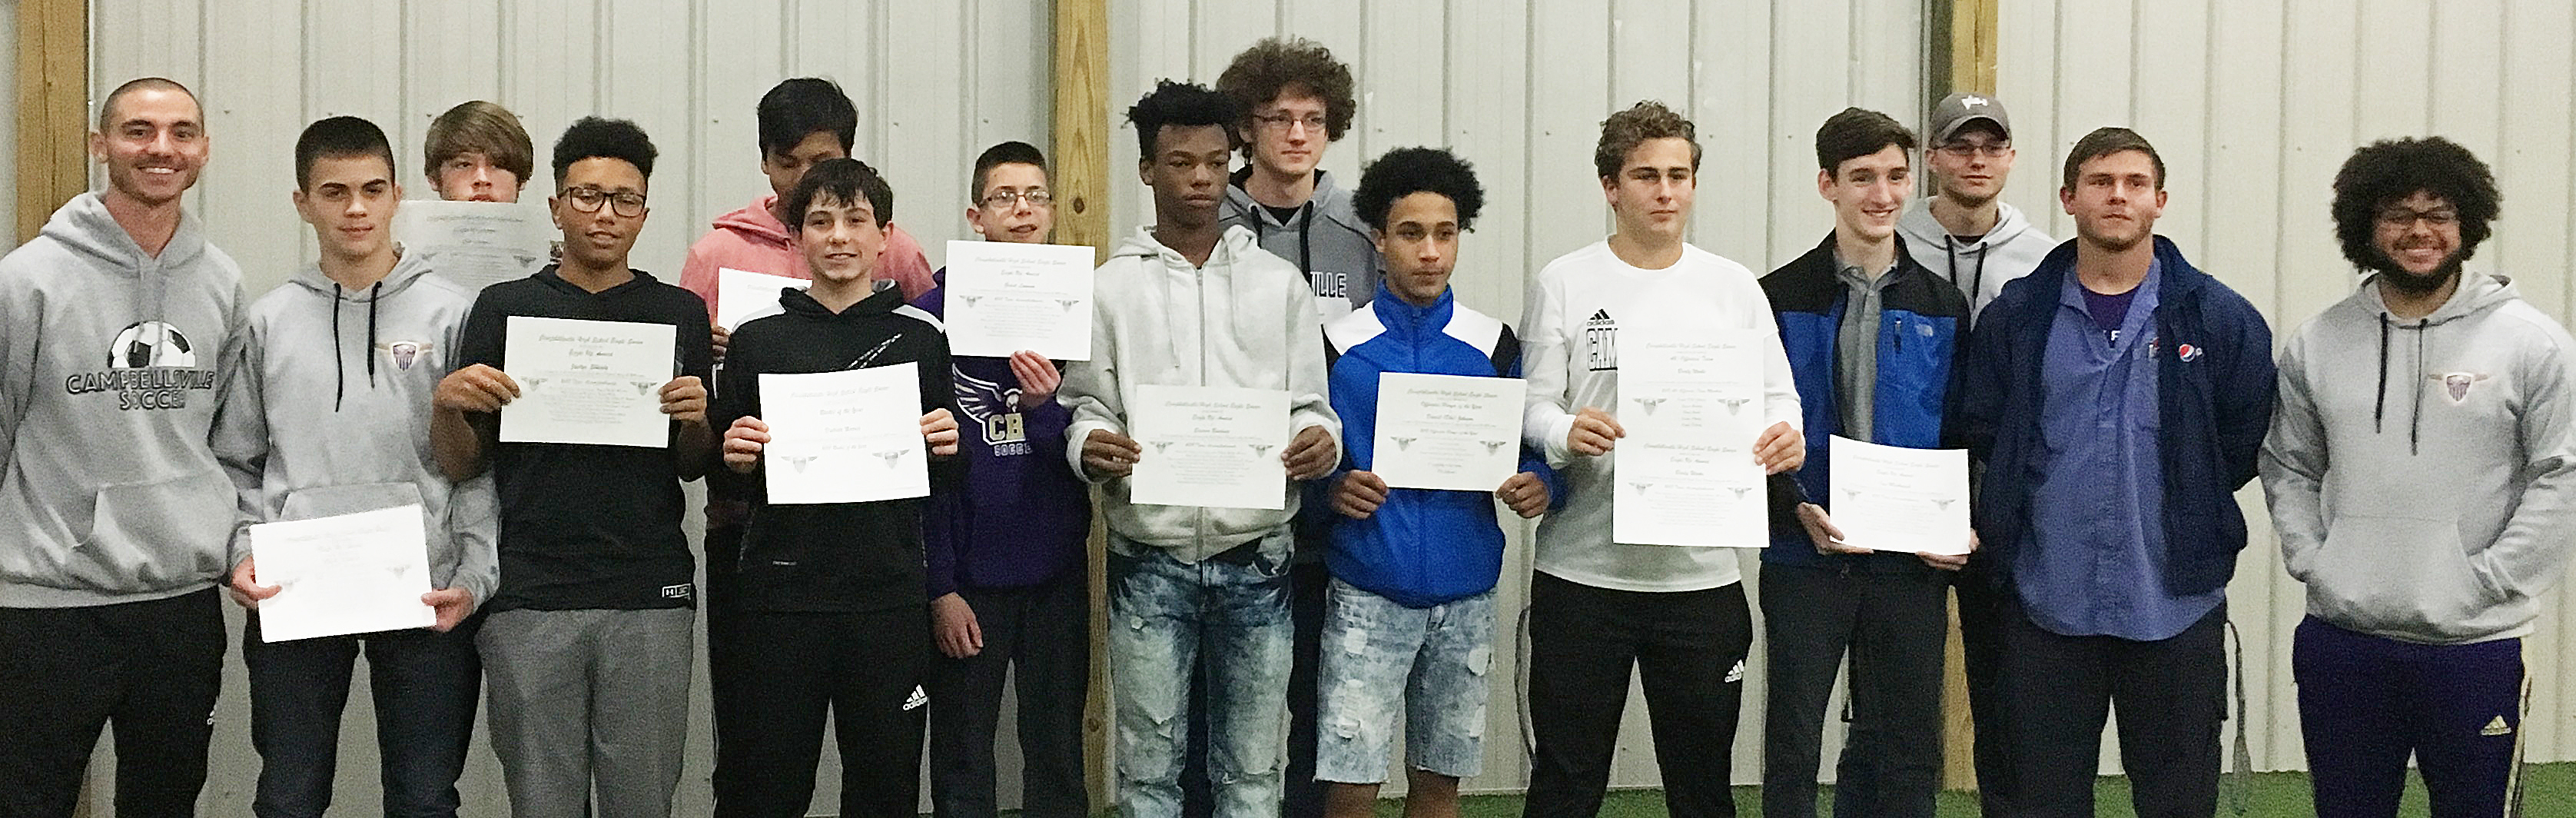 CHS soccer players are honored with the Eagle Up award. From left are head coach Bradley Harris, sophomore Clark Kidwell, freshman Josh Lucas, sophomores Jastyn Shively and Jeffrey Sustaita, freshmen Dakota Harris and Grant Lawson, sophomore Sae'von Buckner, junior Brennon Wheeler, seniors Daniel Johnson, Brody Weeks, Ian McAninch and Keidlan Boils and assistant coaches Owen Weeks and Malique Spaulding. Absent from the photos are freshmen Jarred Mays and Peyton Dabney and senior Evan McAninch.